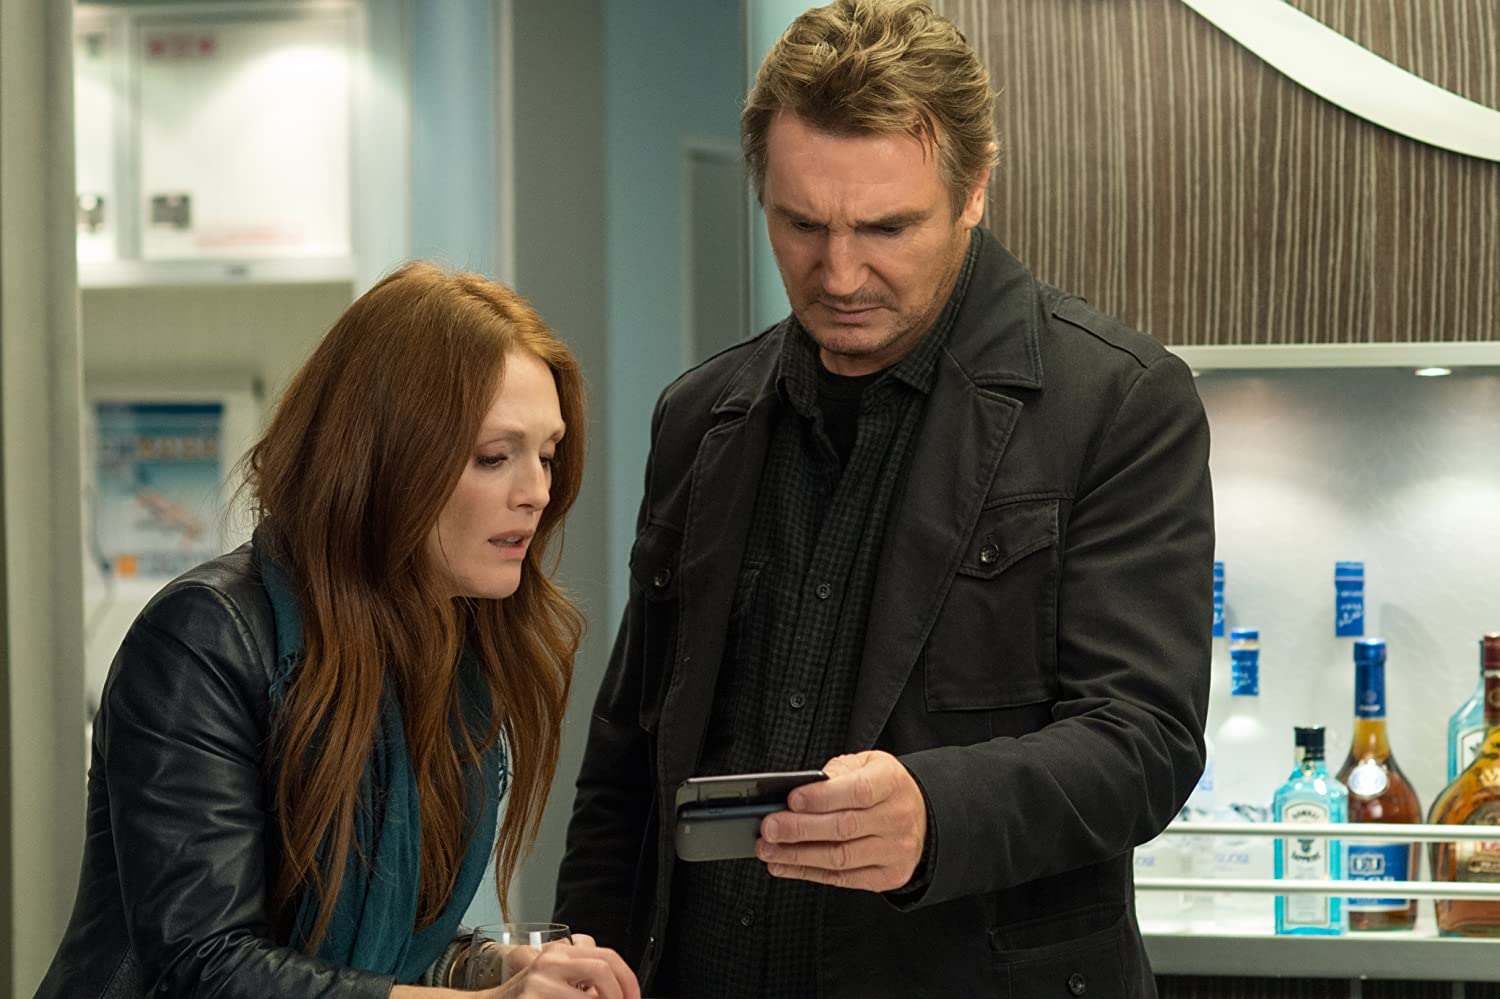 Julianne Moore and Liam Neeson in Non-Stop (2014)